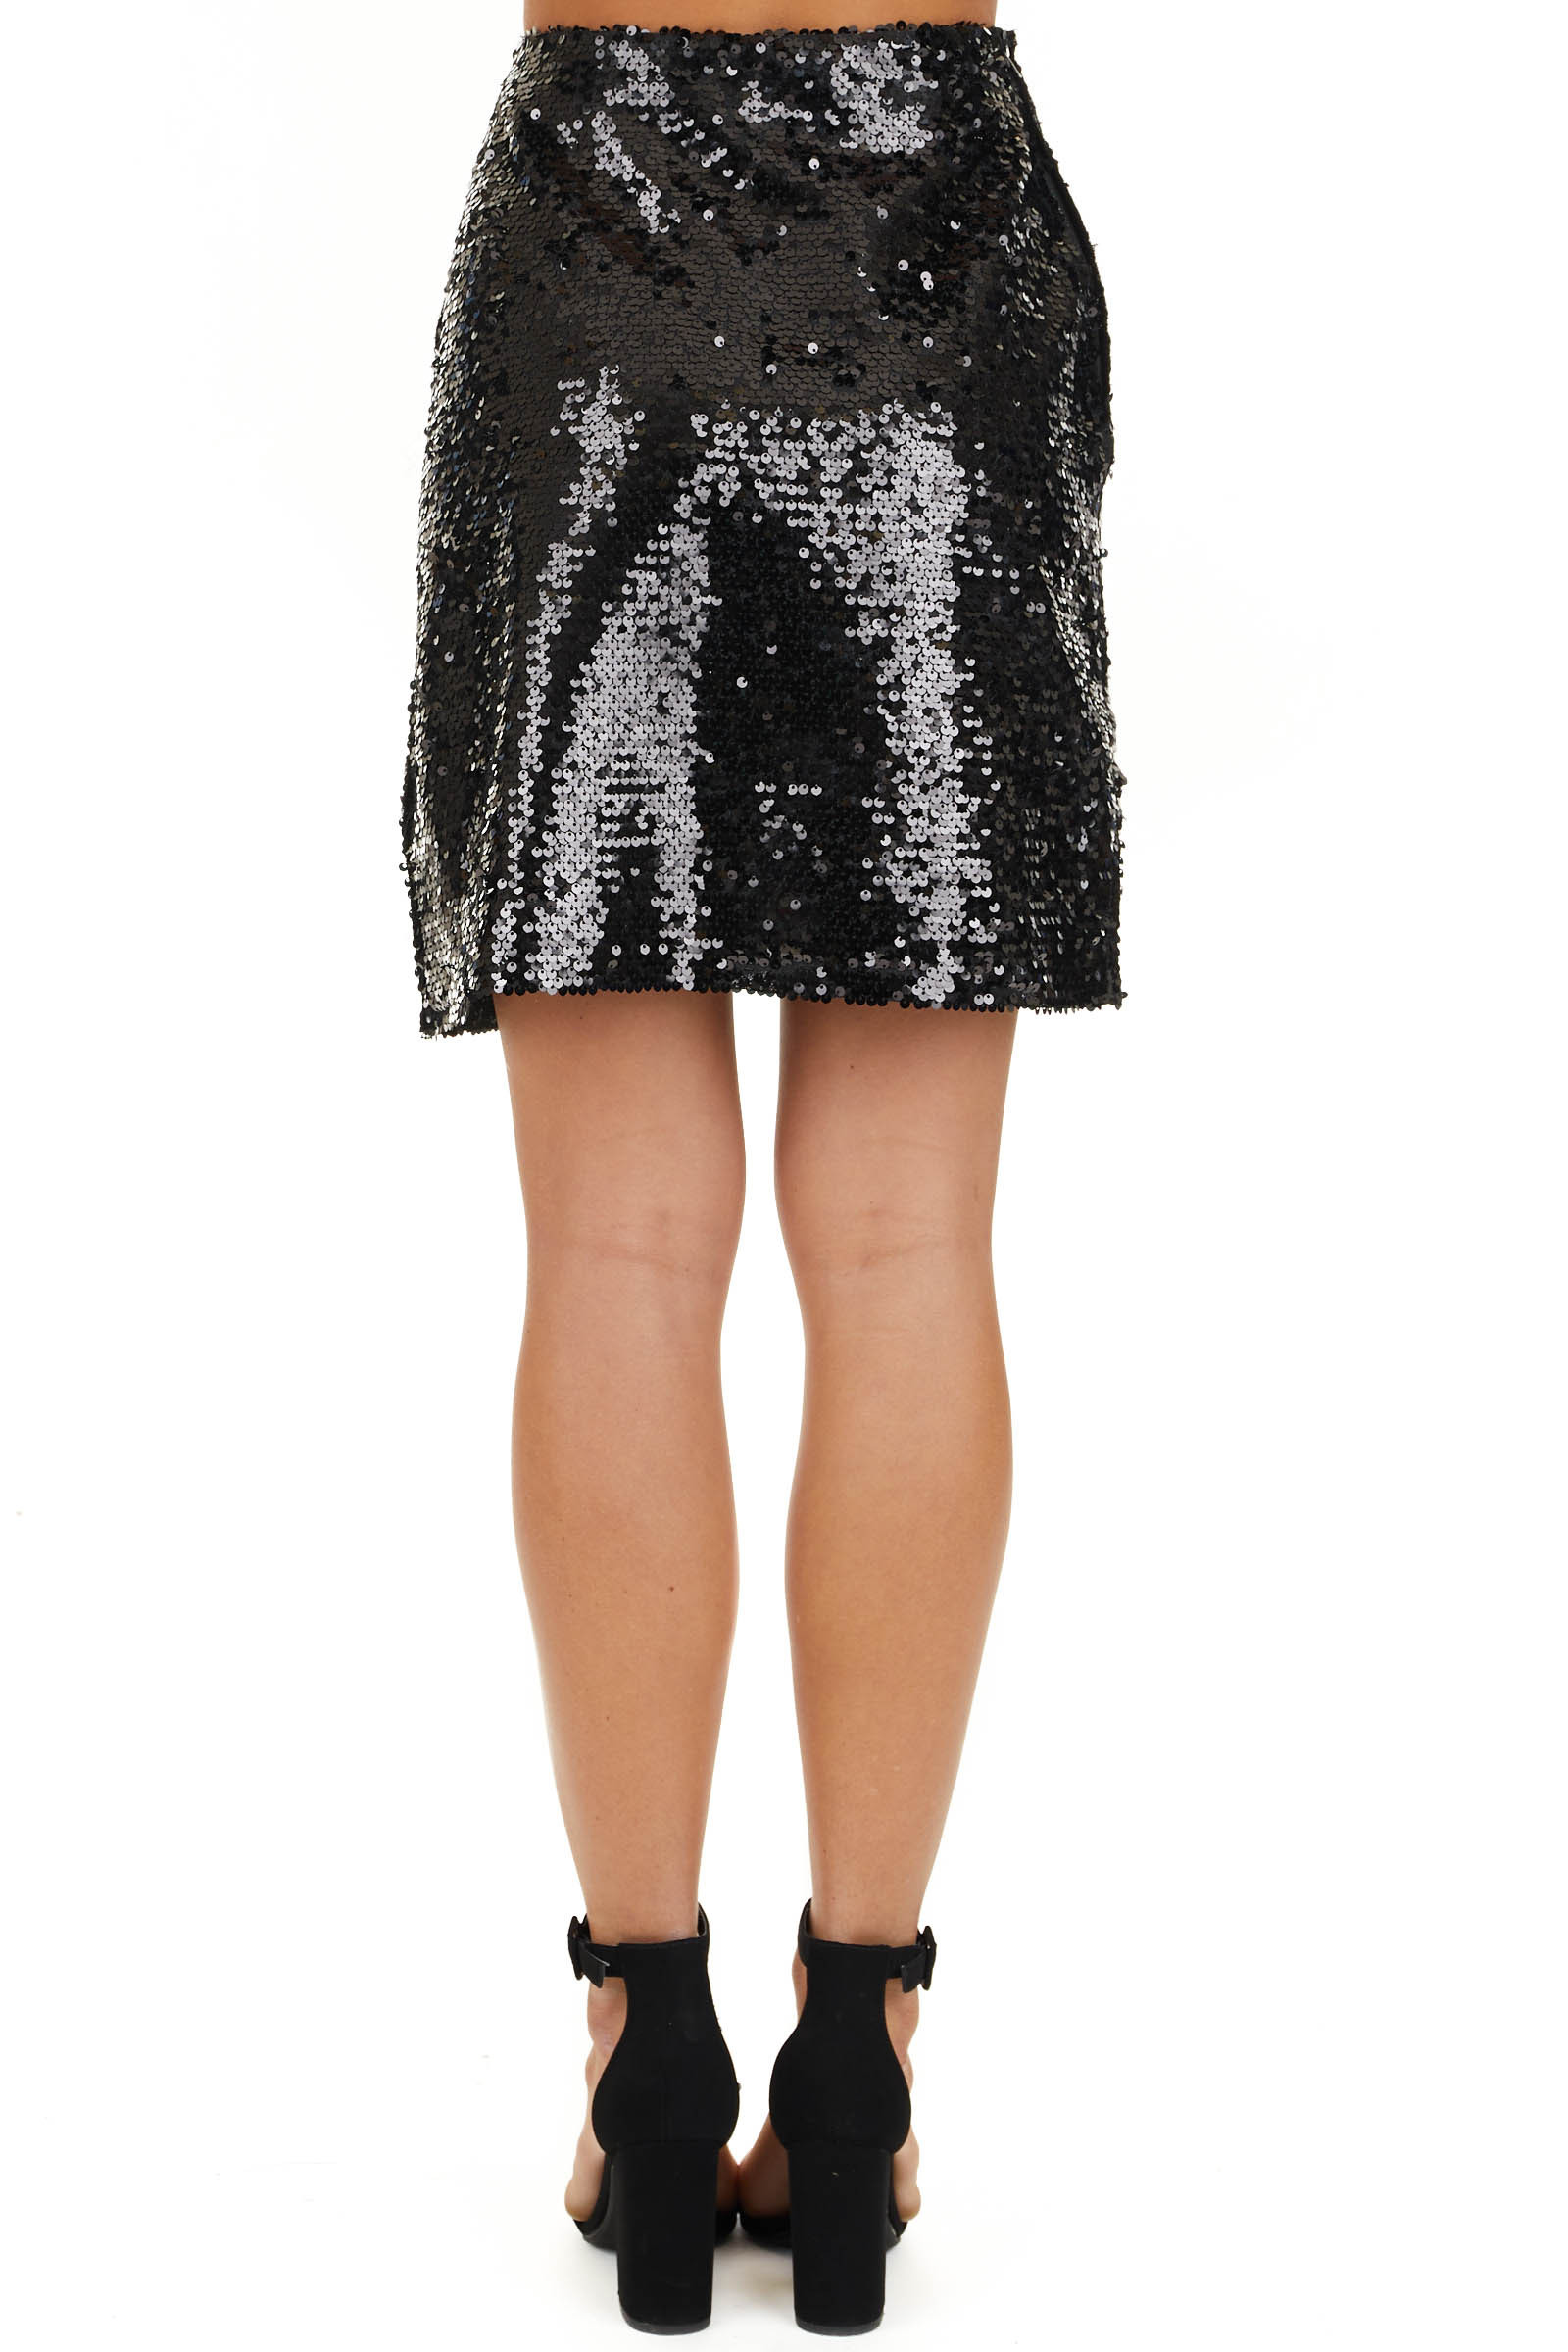 Black Sequined Mini Skirt with Side Zipper Closure back view